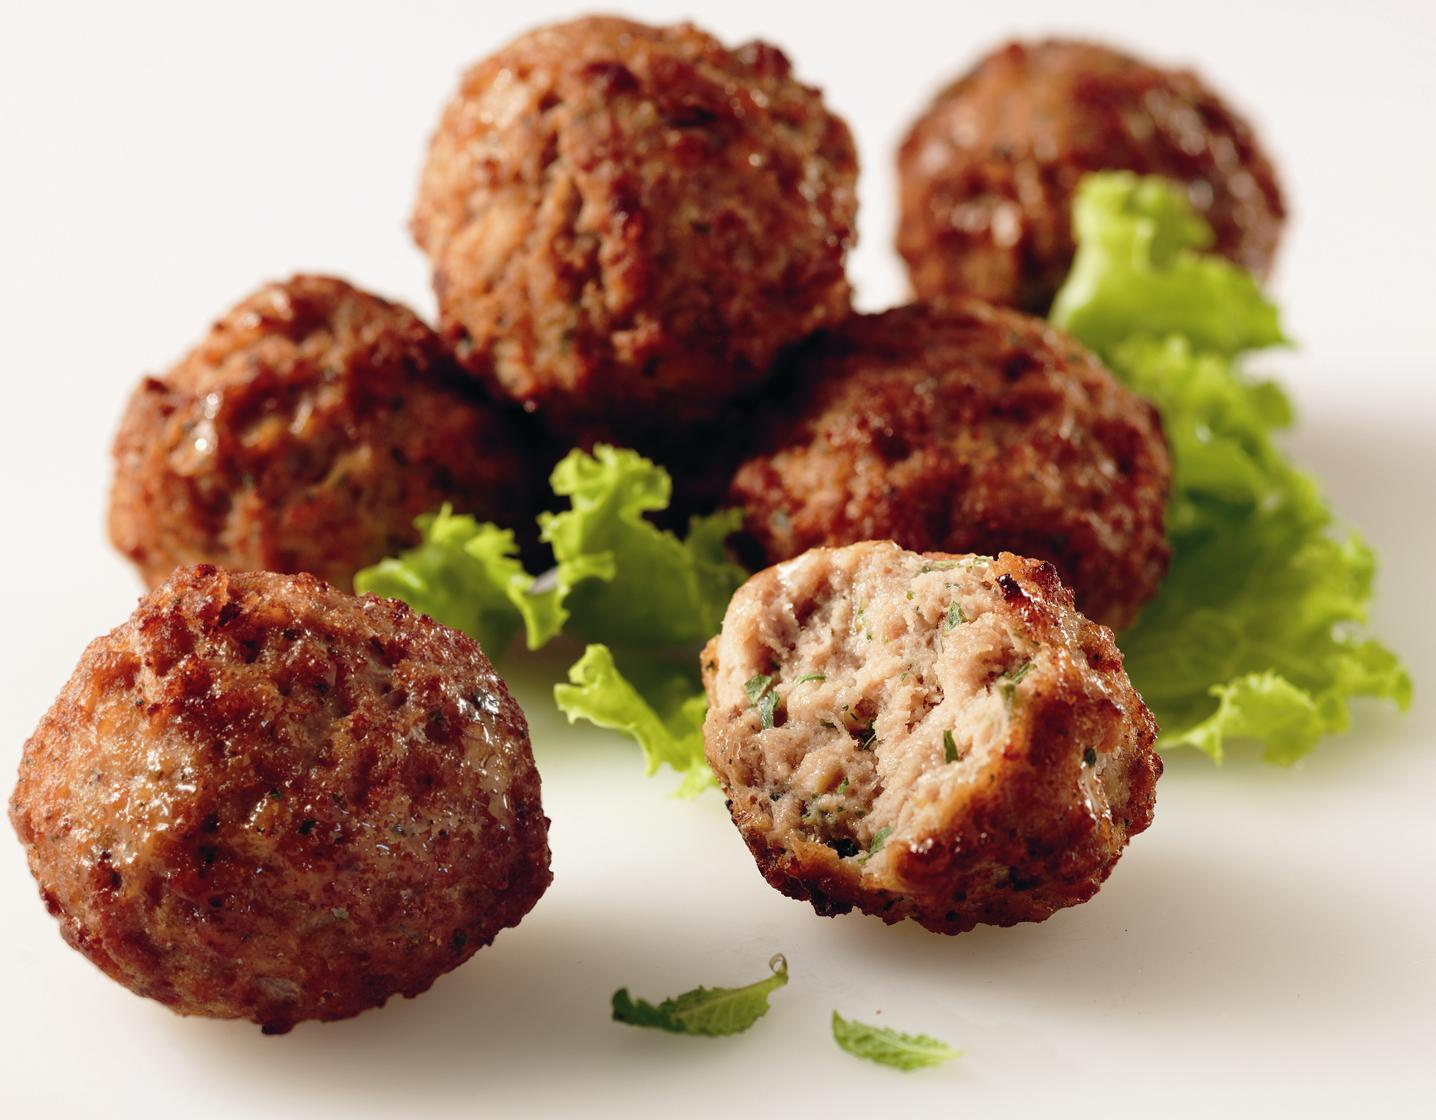 Recipes By Course Main Dish Meat - Other Keftedakia (Greek meatballs)